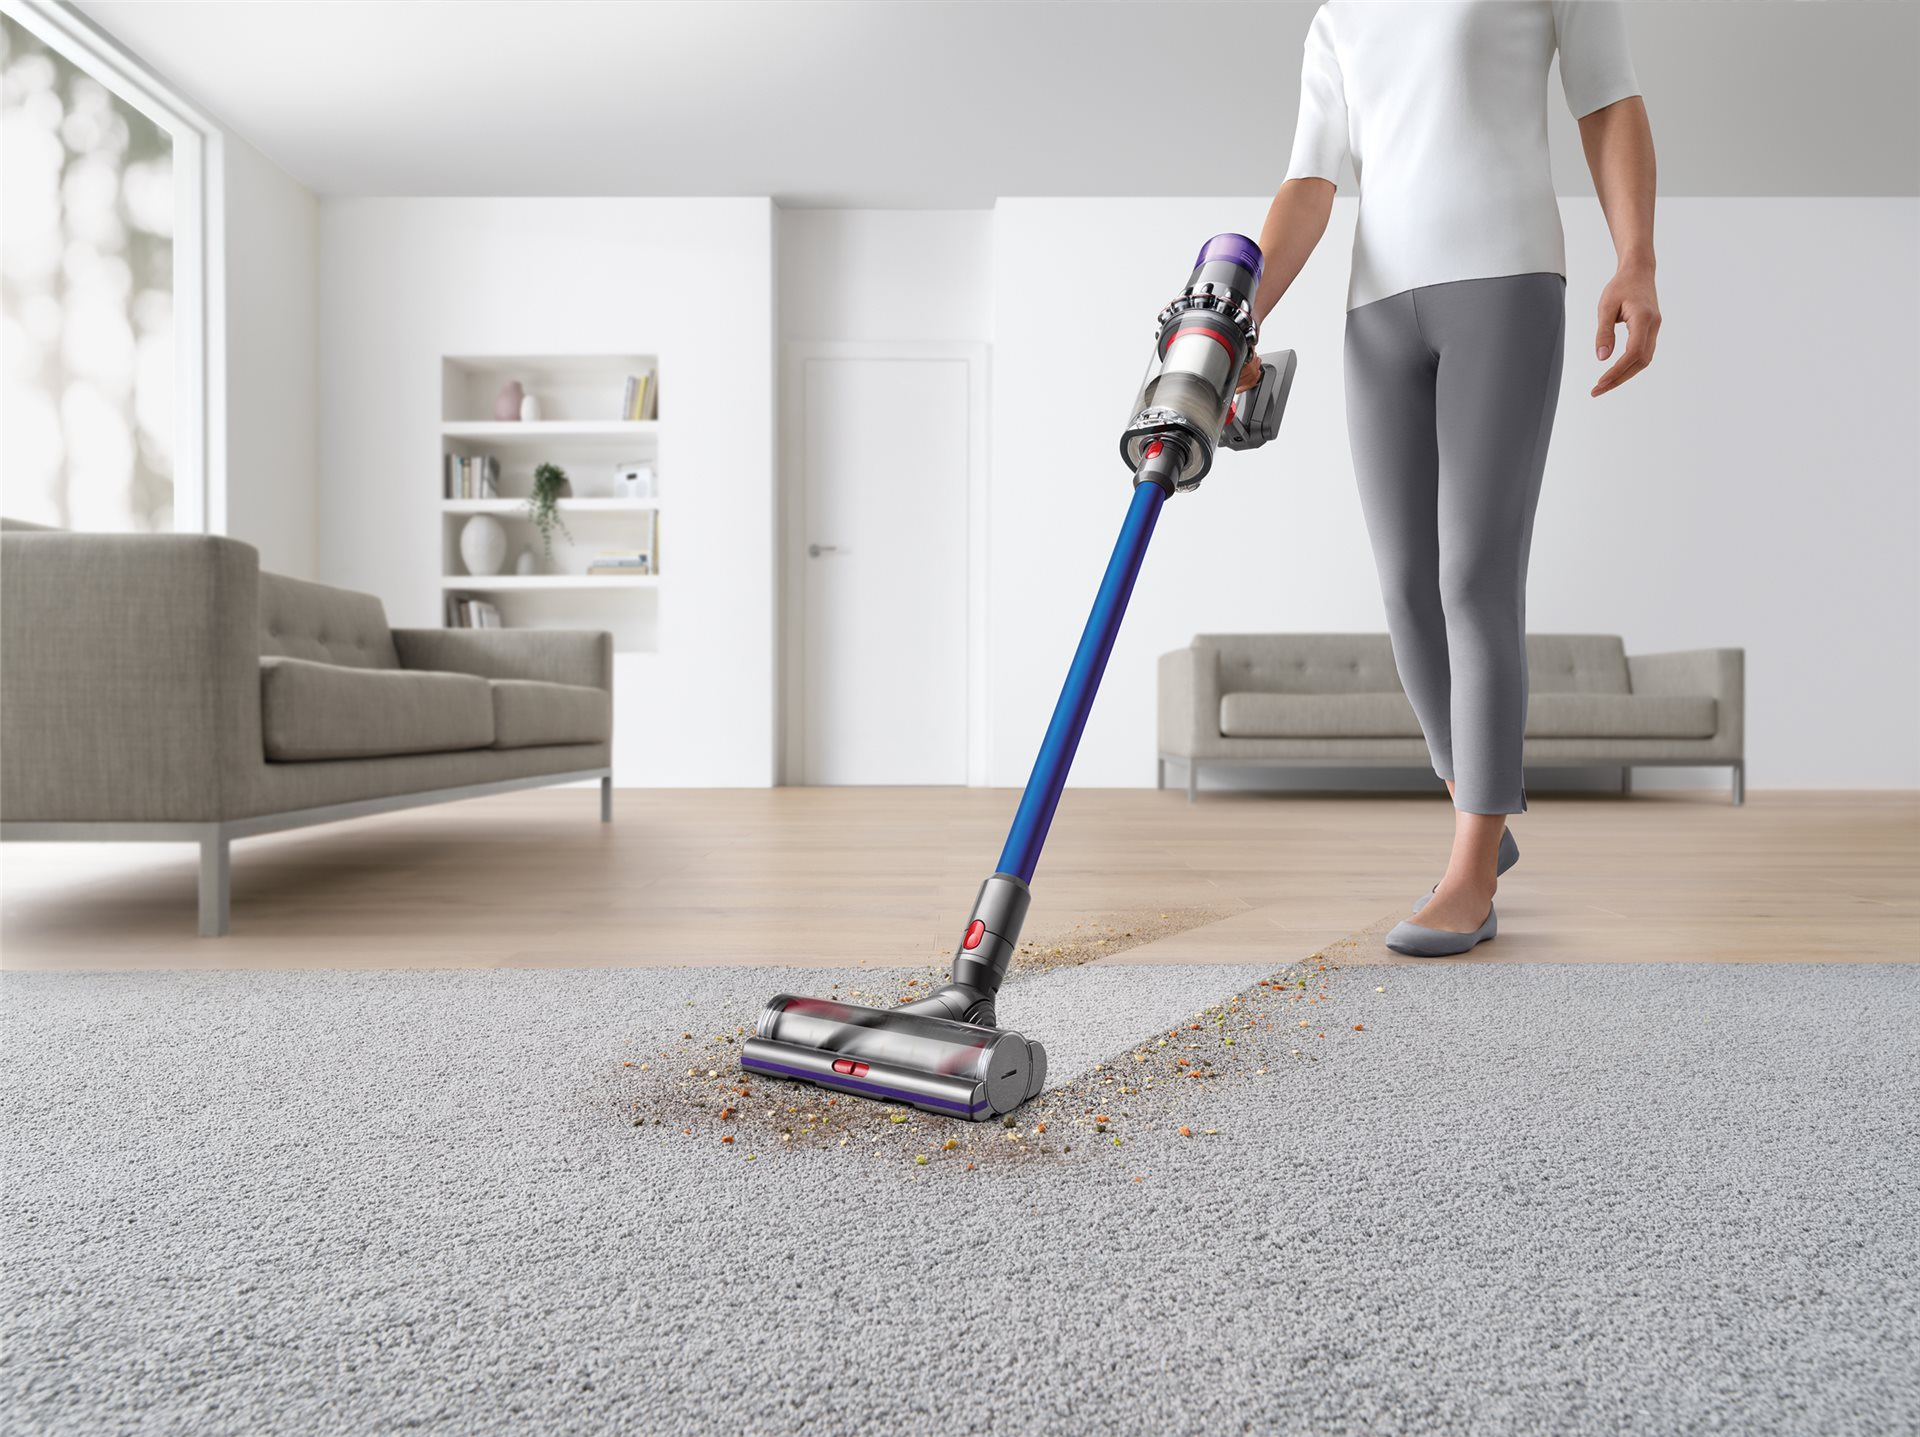 Have a bigger home to vacuum? Dyson's got you covered